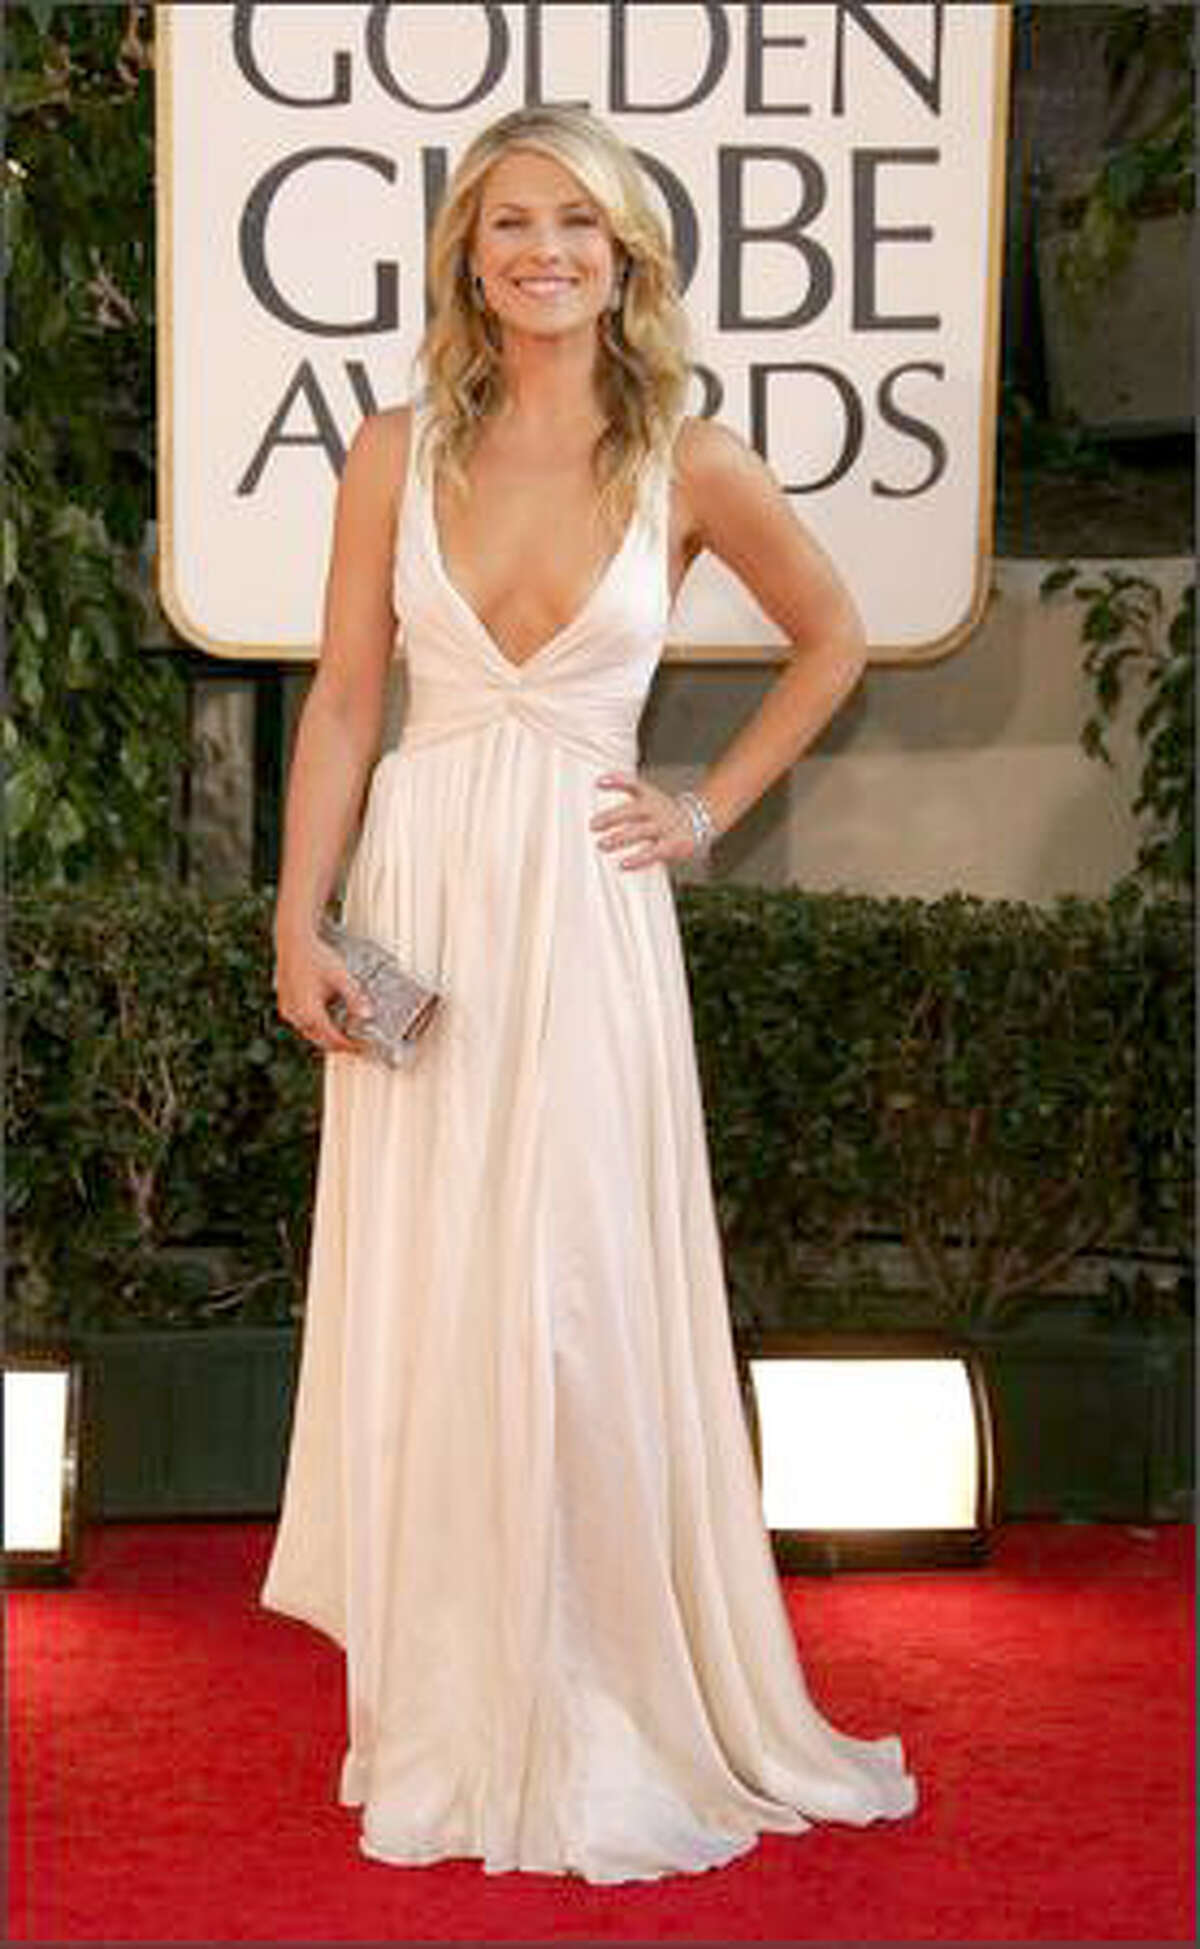 Actress Ali Larter arrives at the 64th Annual Golden Globe Awards on Jan. 15, 2007.